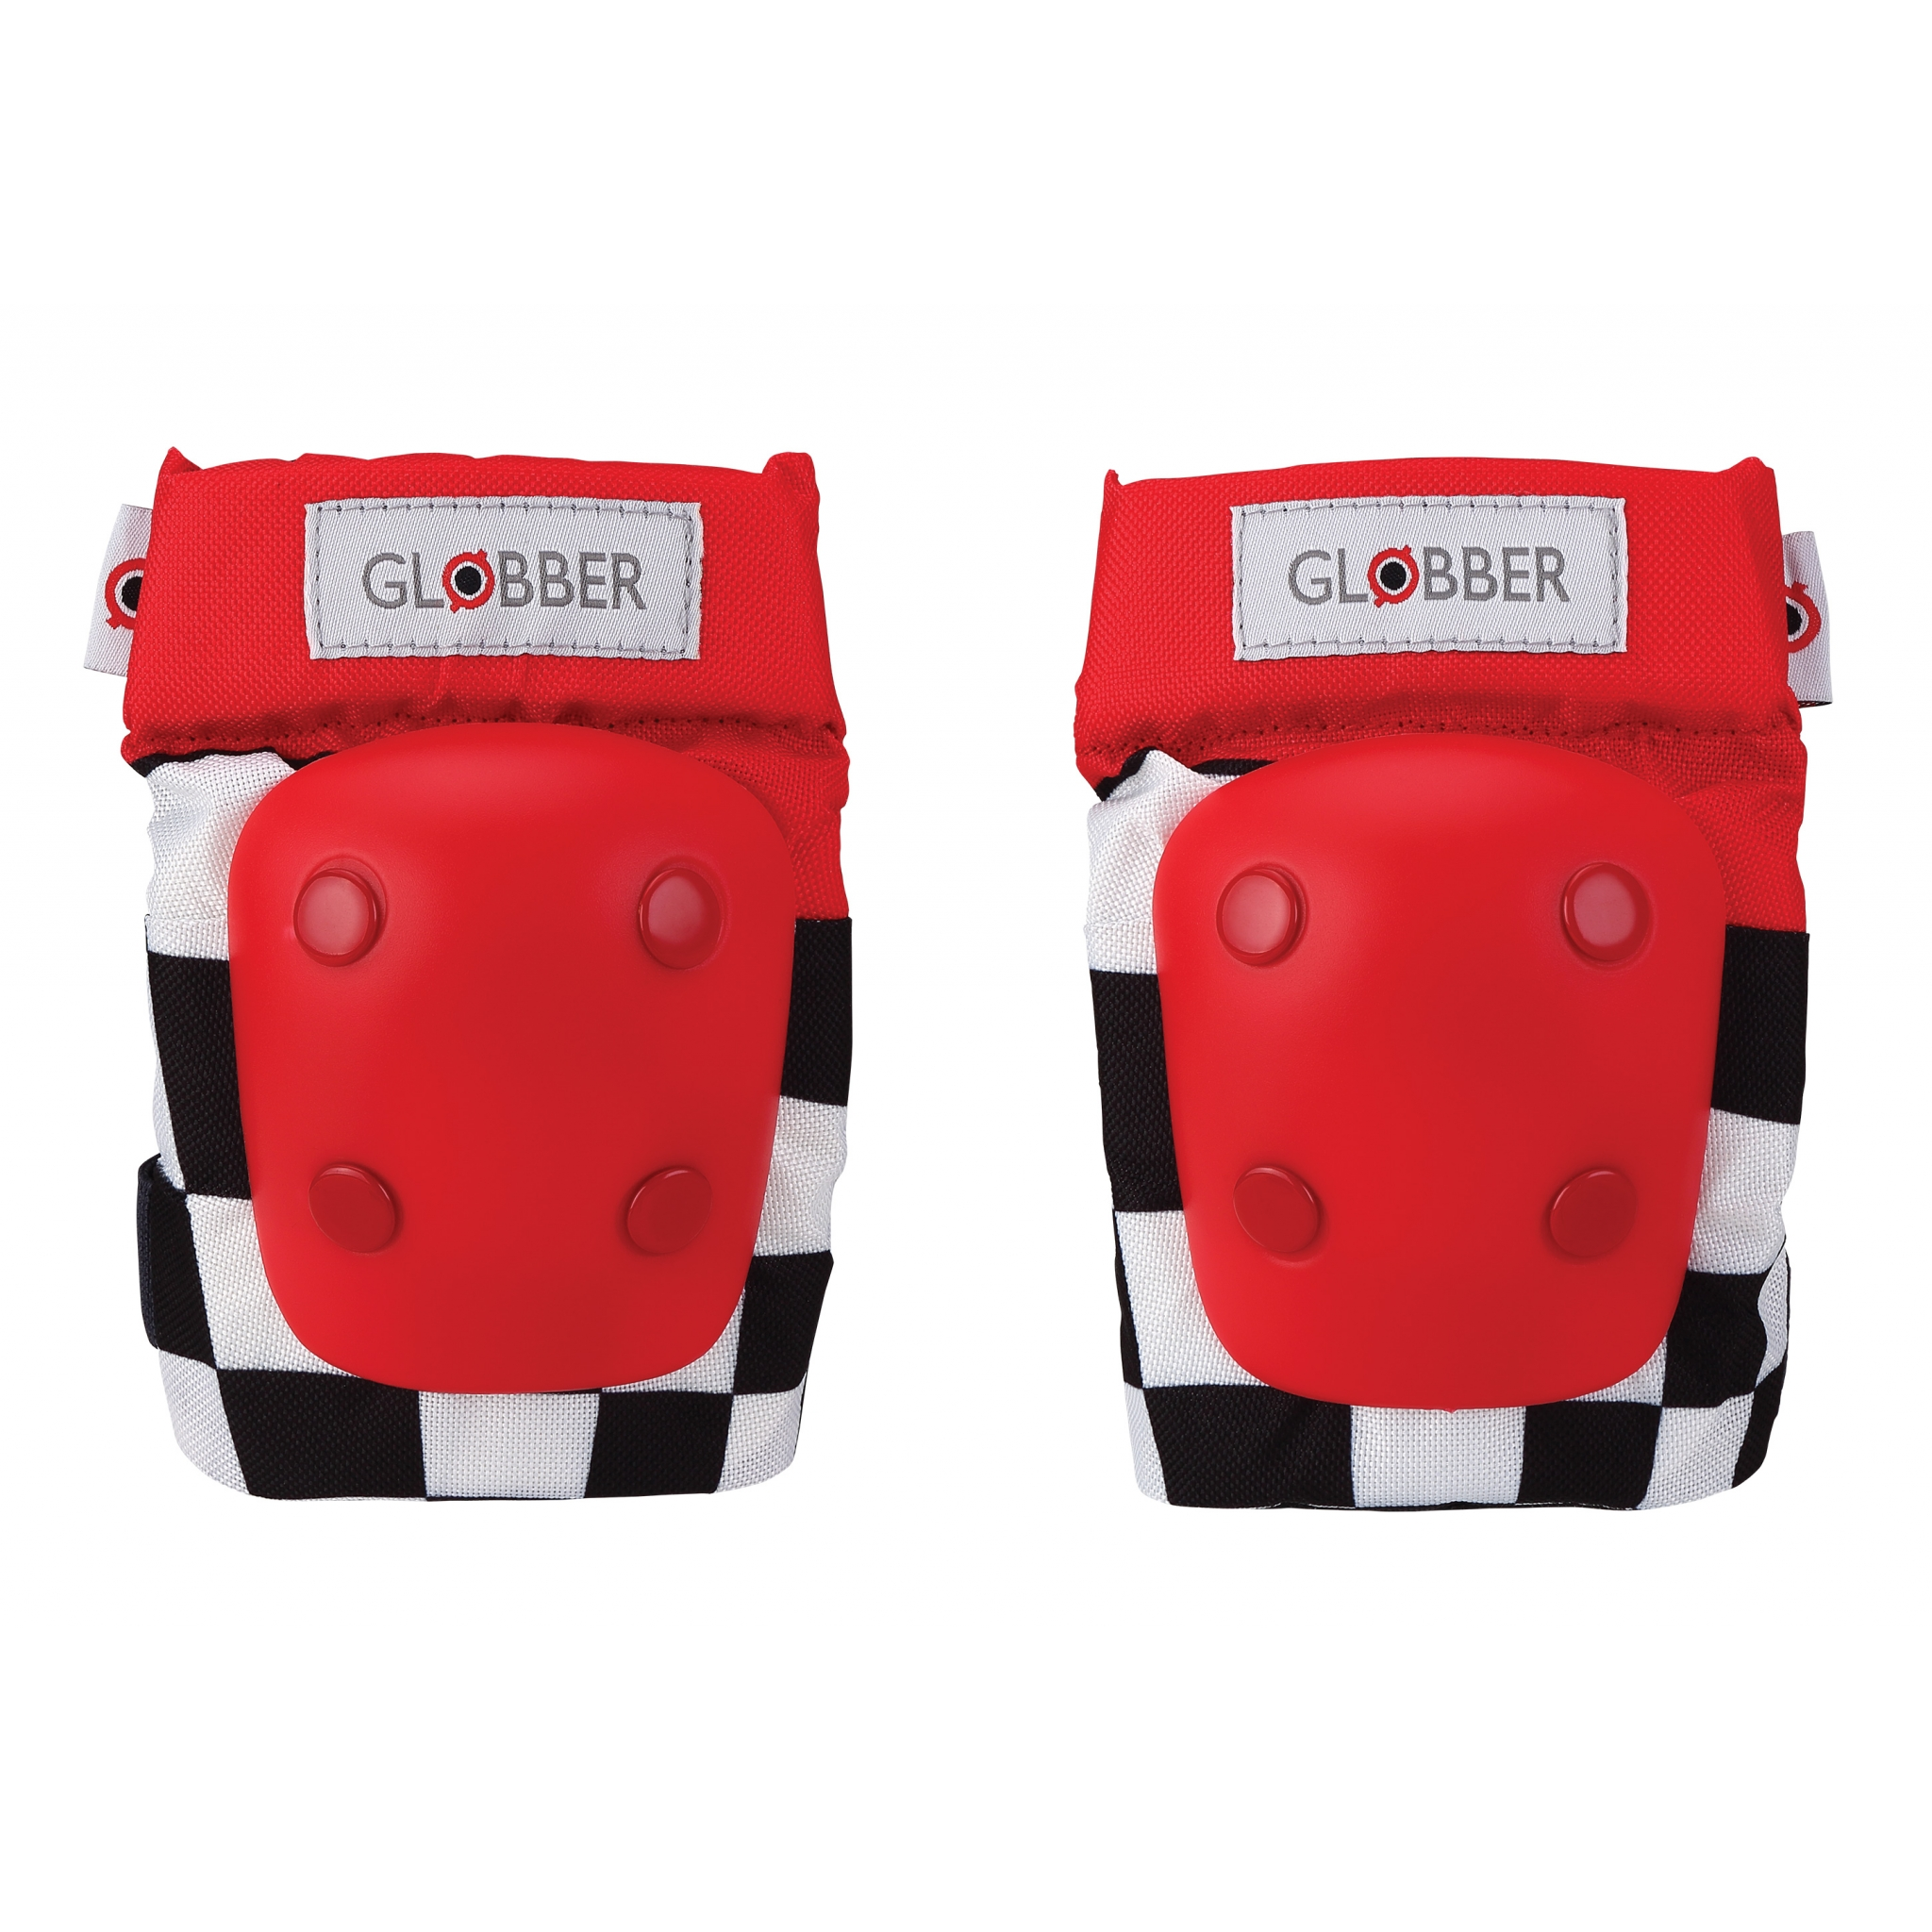 printed protective gear for kids - Globber 3